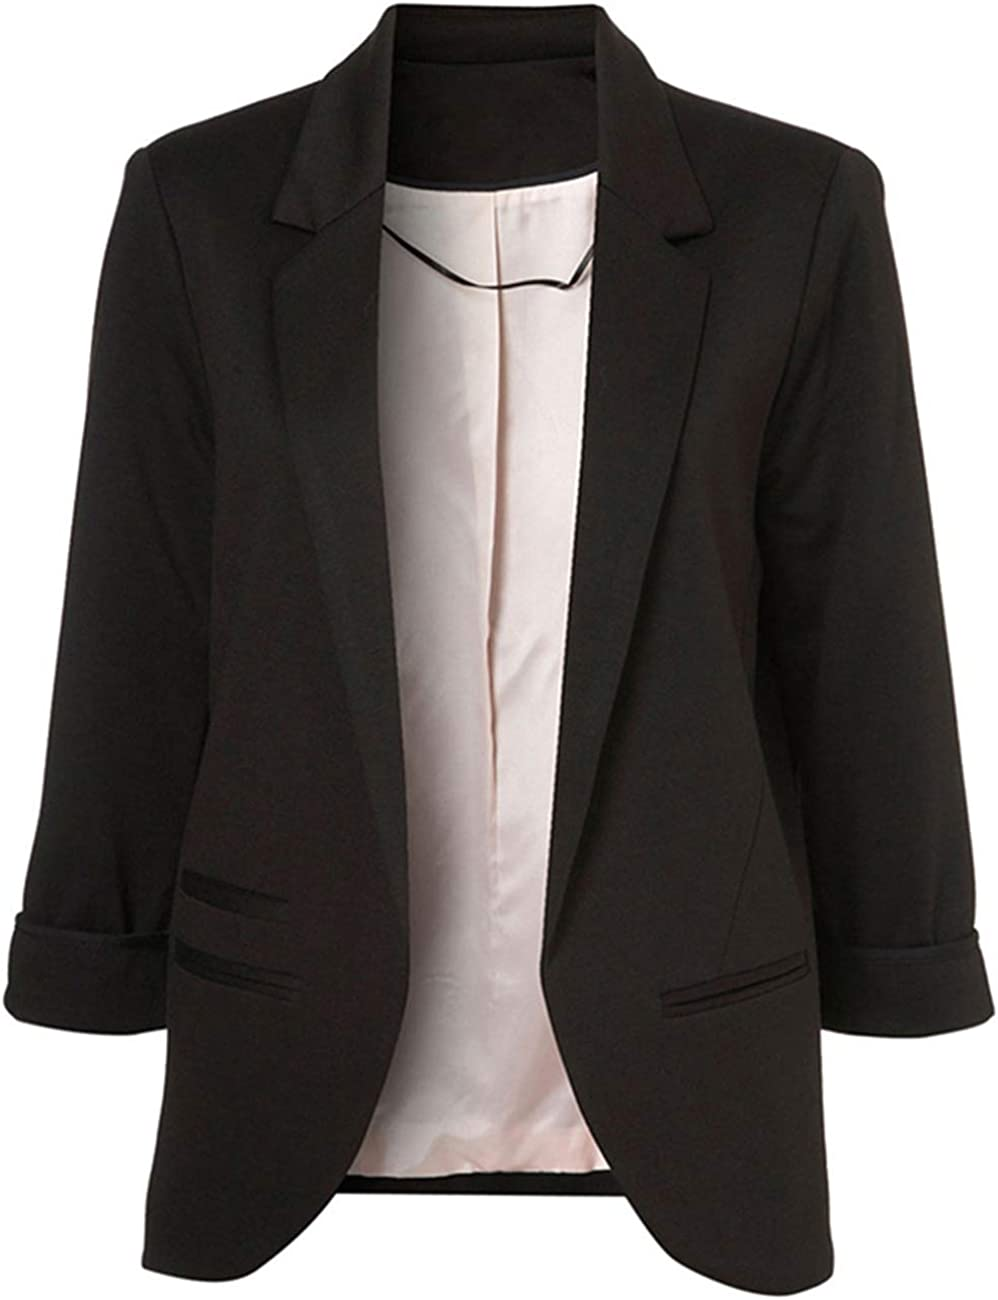 Lrady Women's Fashion Casual Rolled Up 3/4 Sleeve Slim Office Blazer Jacket Suits